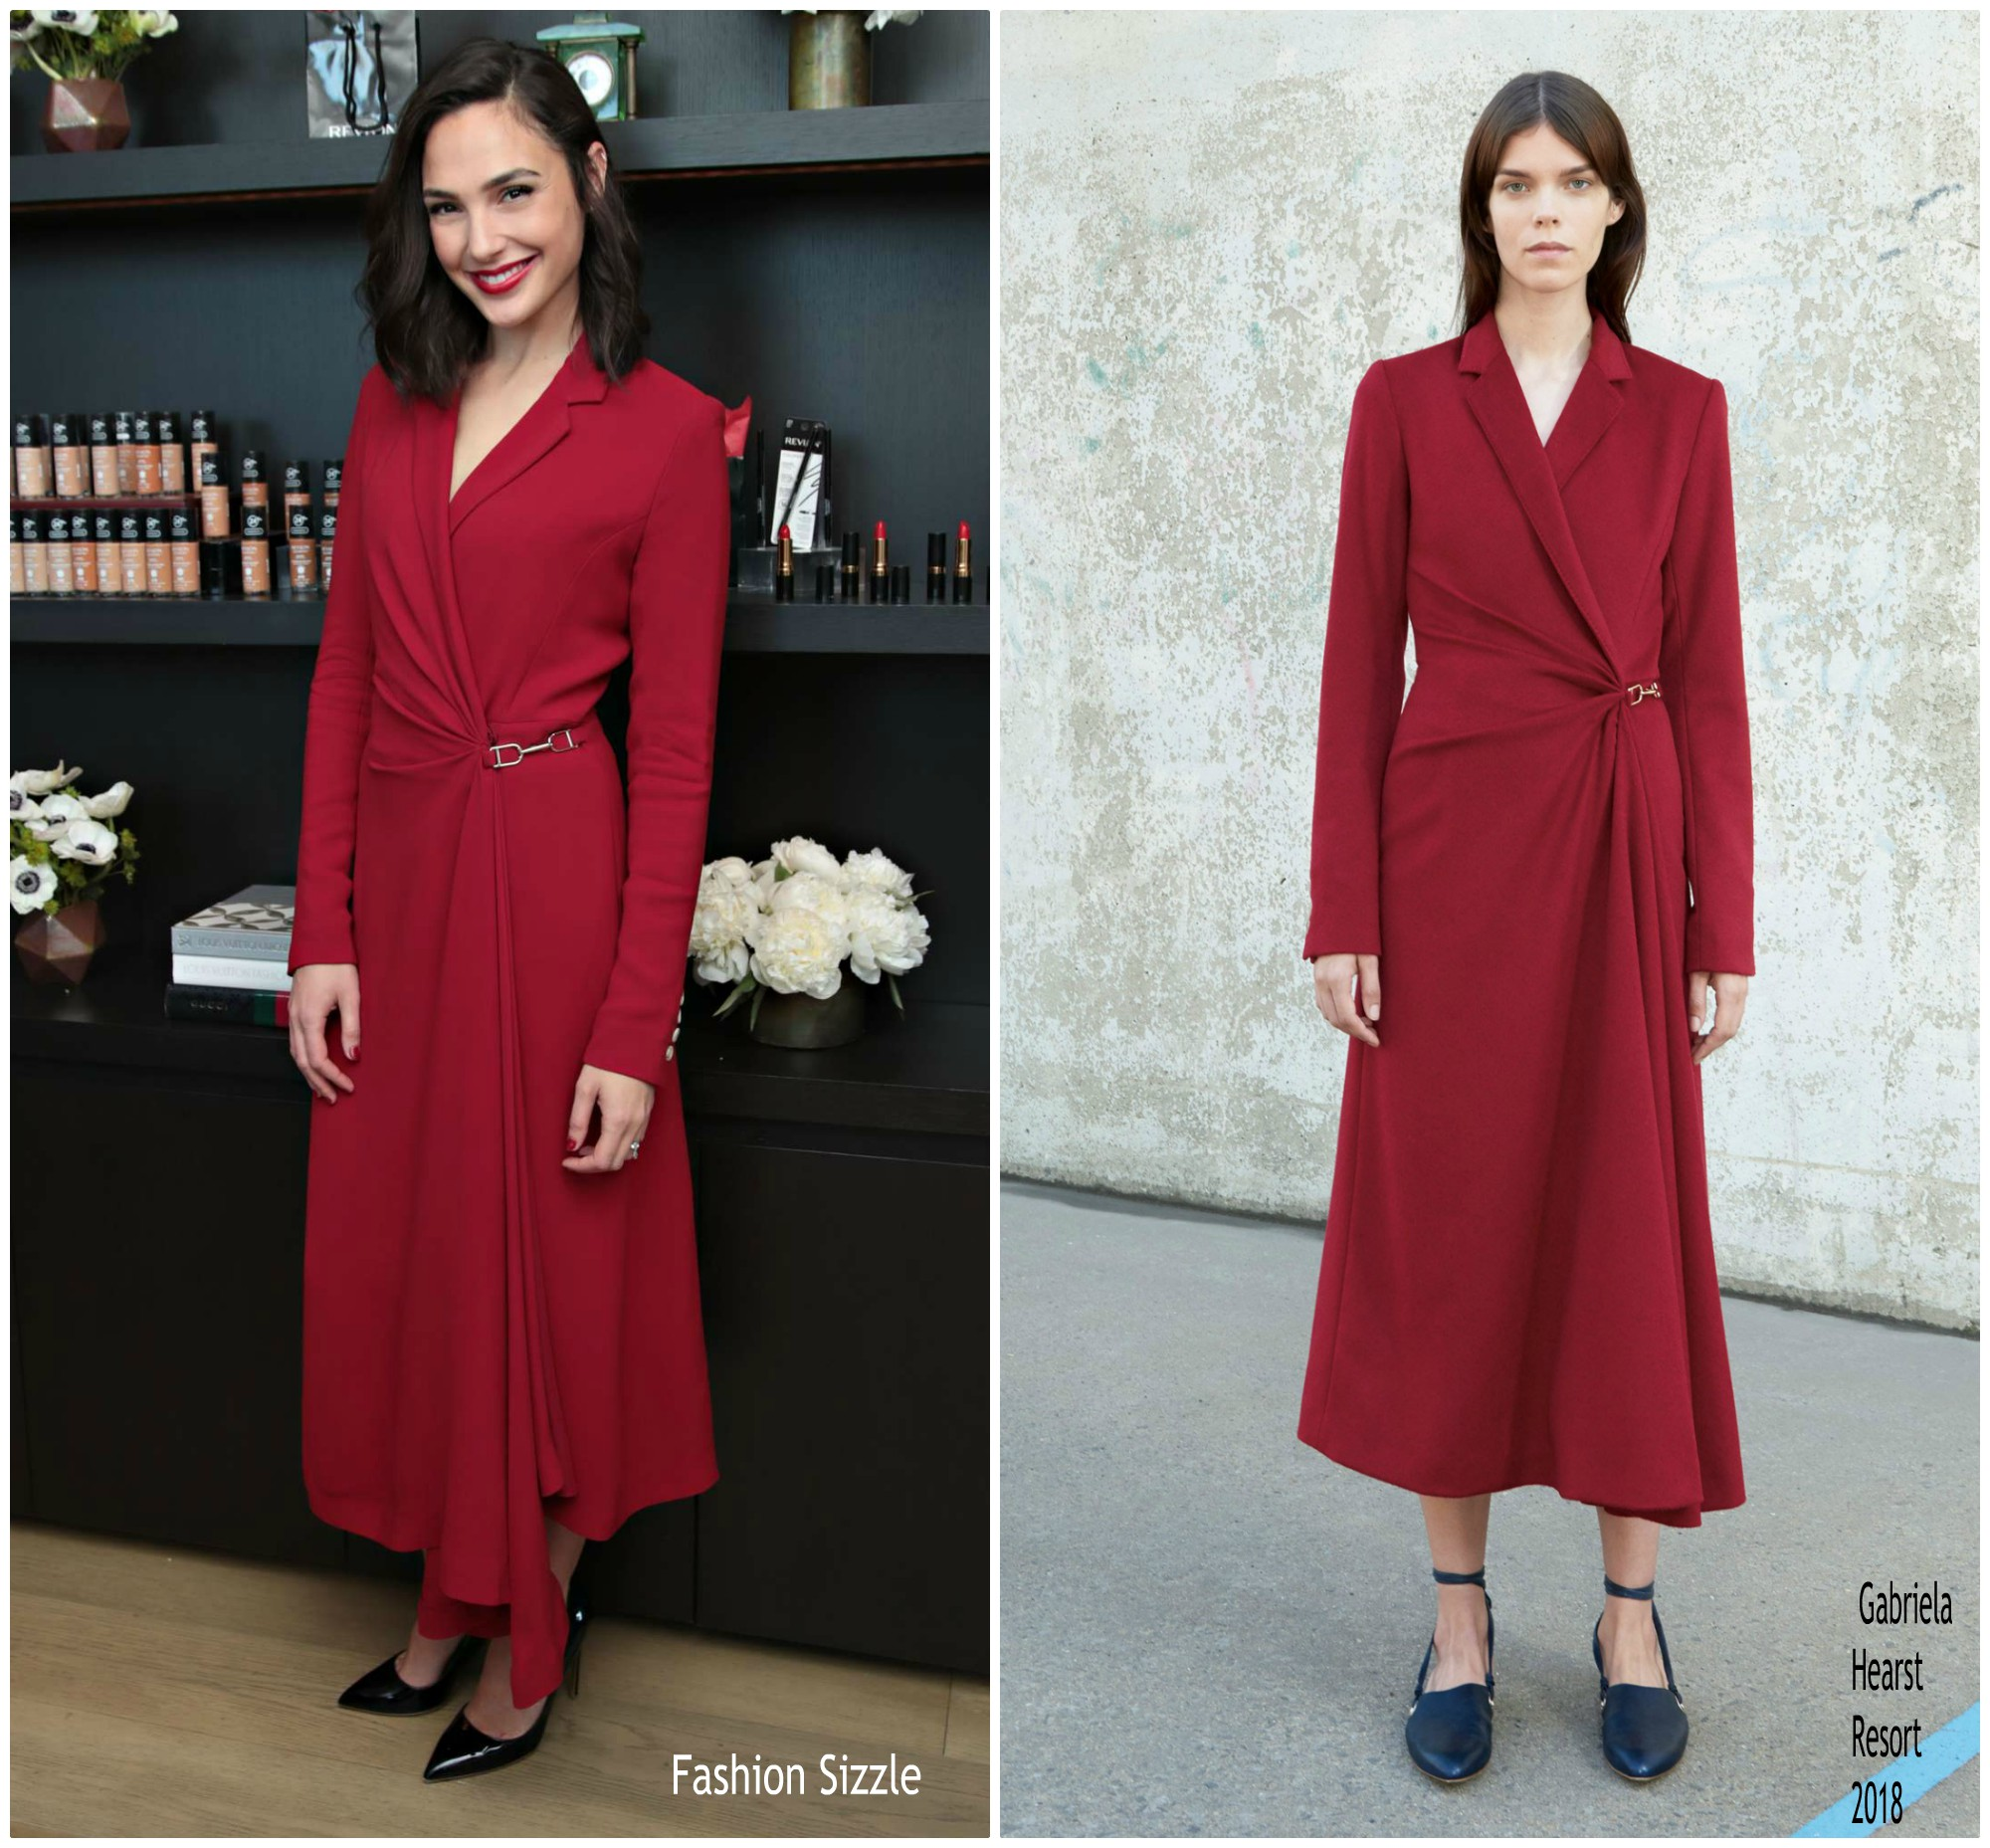 gal-gadot-in-gabriela-hearst-revlon-brand-ambassador-media-day